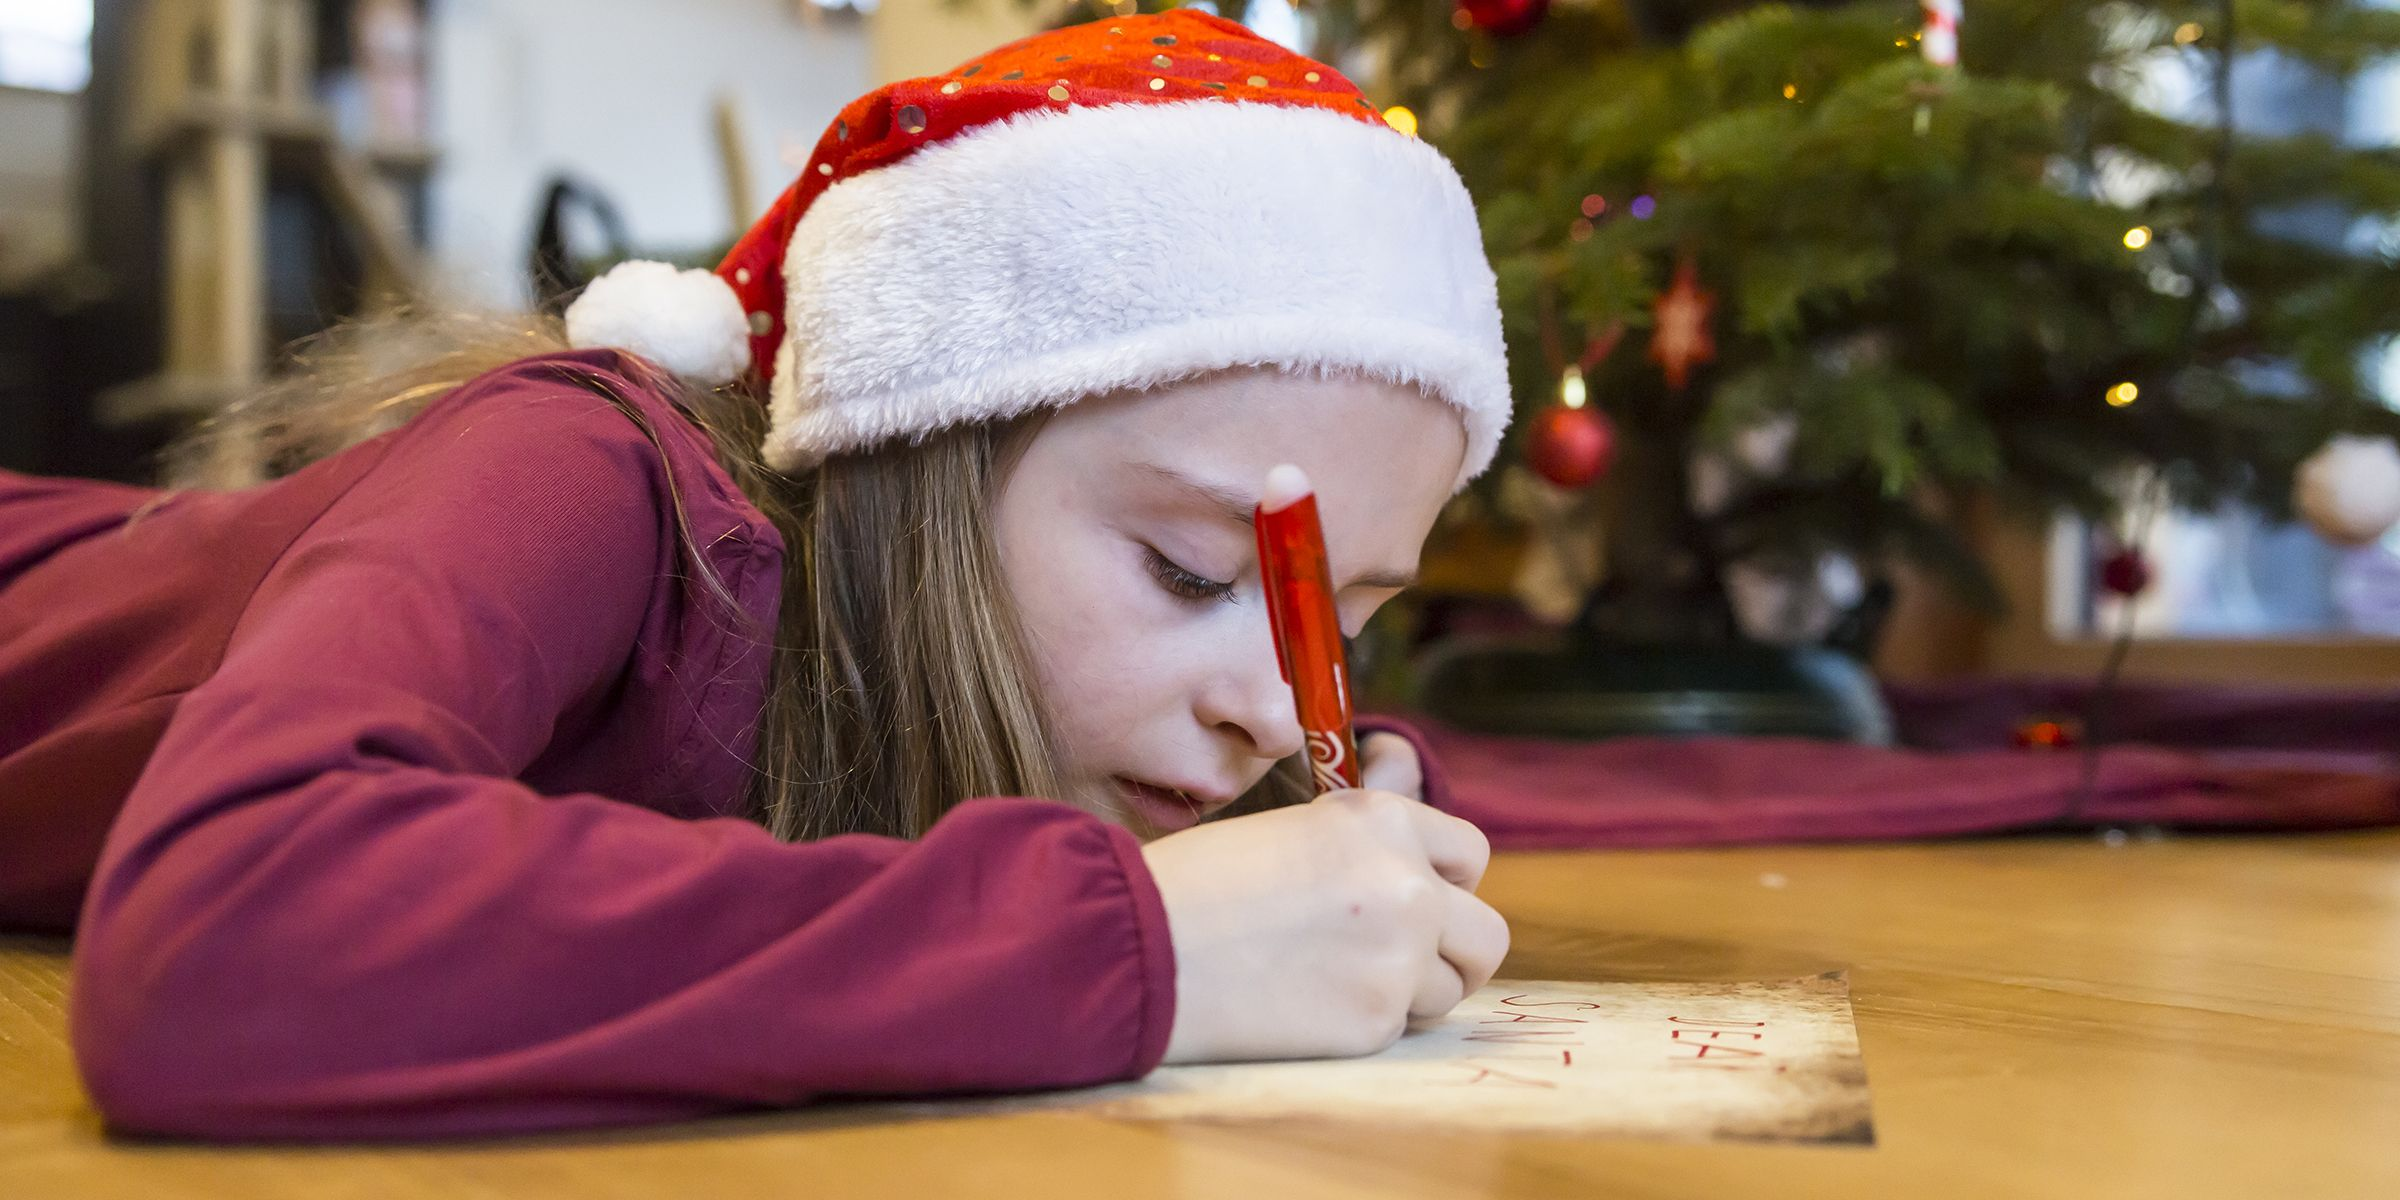 Here's how you can fulfill kids' gift wish lists this